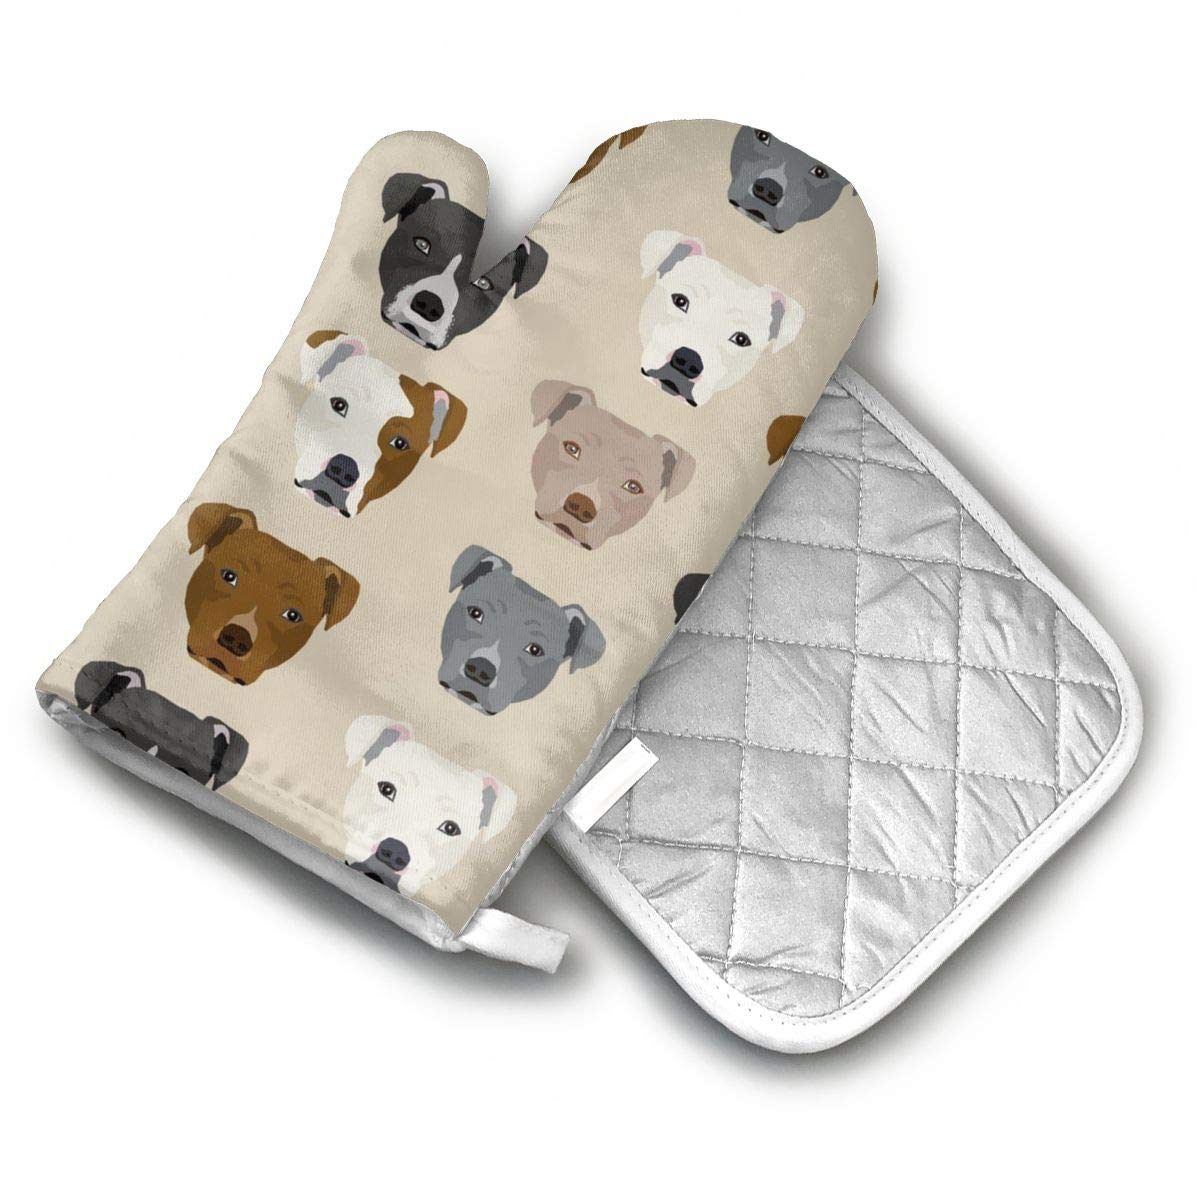 ECEED DAI Pitbull Heads Oven Mitts with Potholders Gloves Non-Slip Easy to Use Gloves Pot Holder for Cooking BBQ Baking